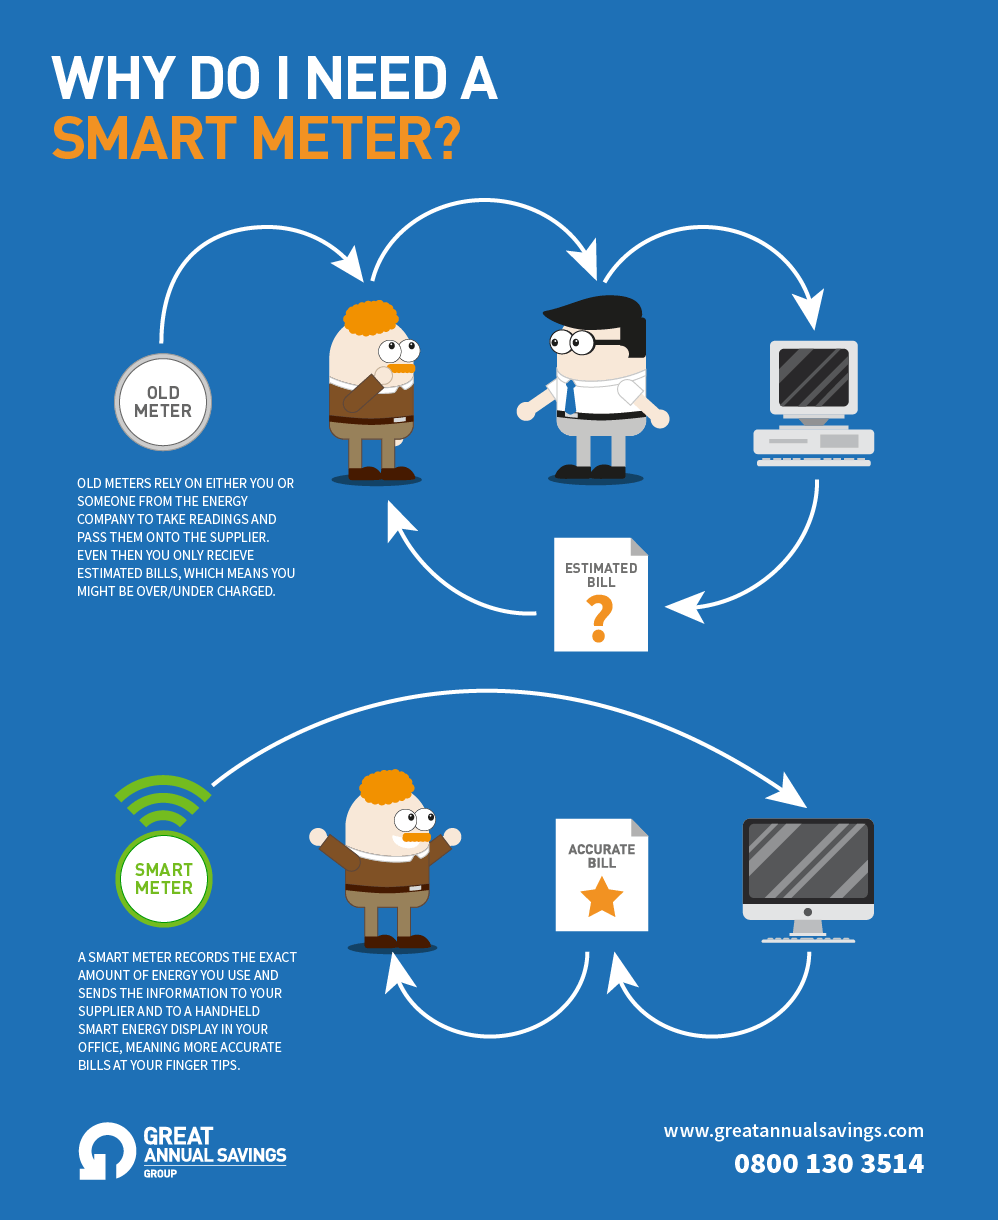 Why do I need a smart meter? | Great Annual Savings